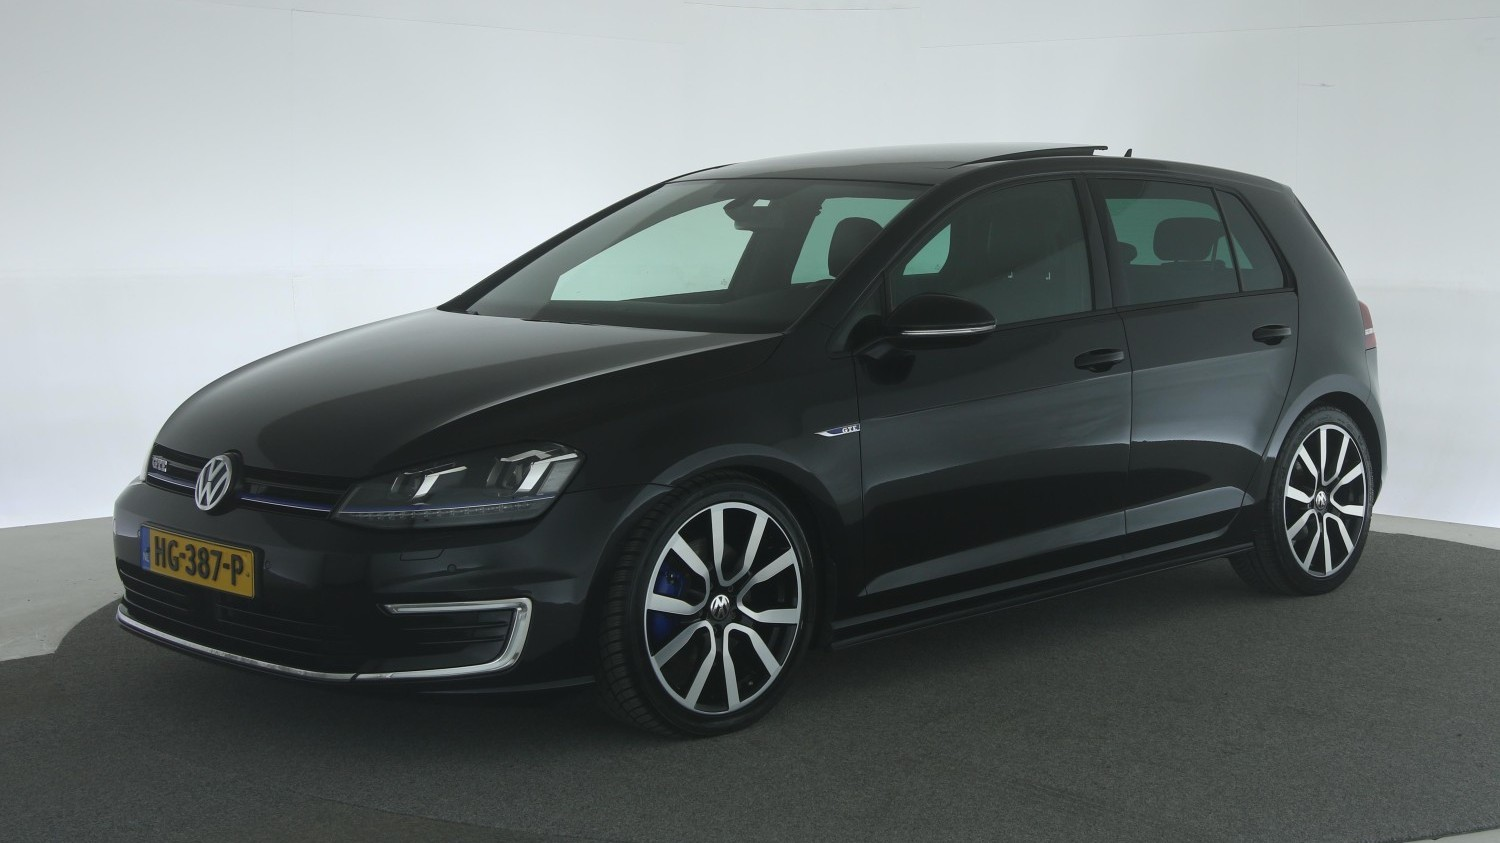 Volkswagen Golf Hatchback 2015 HG-387-P 1